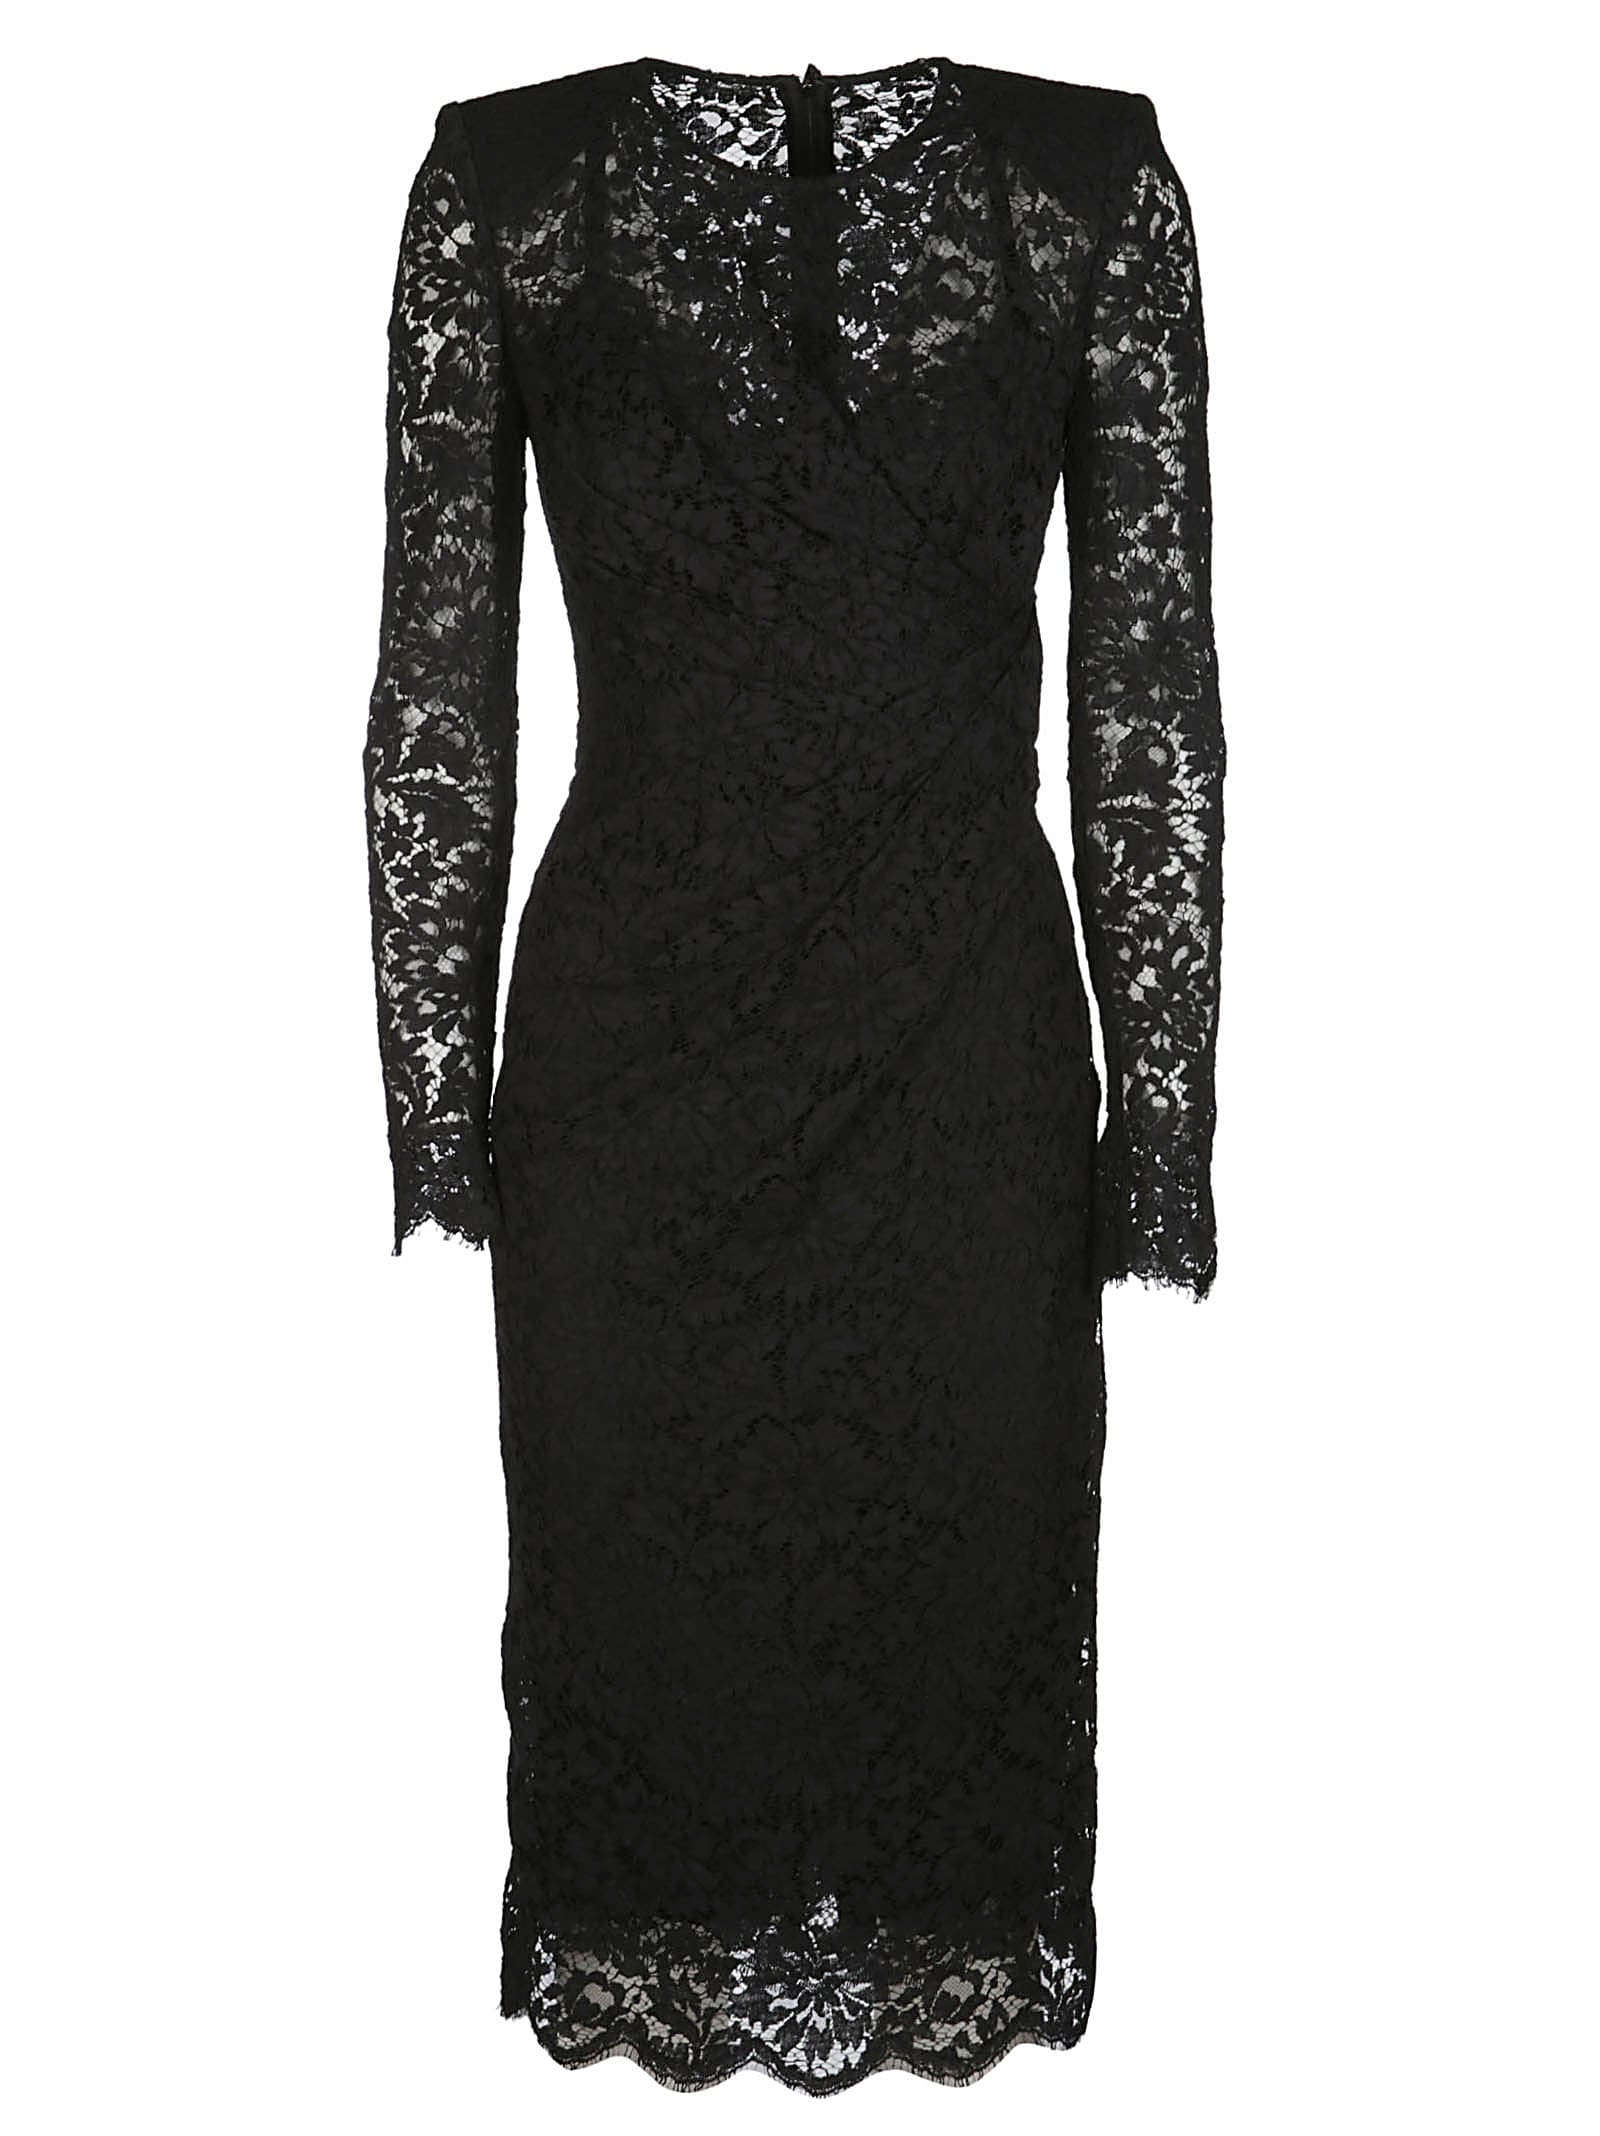 Buy Dolce & Gabbana Black Cotton Blend Dress online, shop Dolce & Gabbana with free shipping